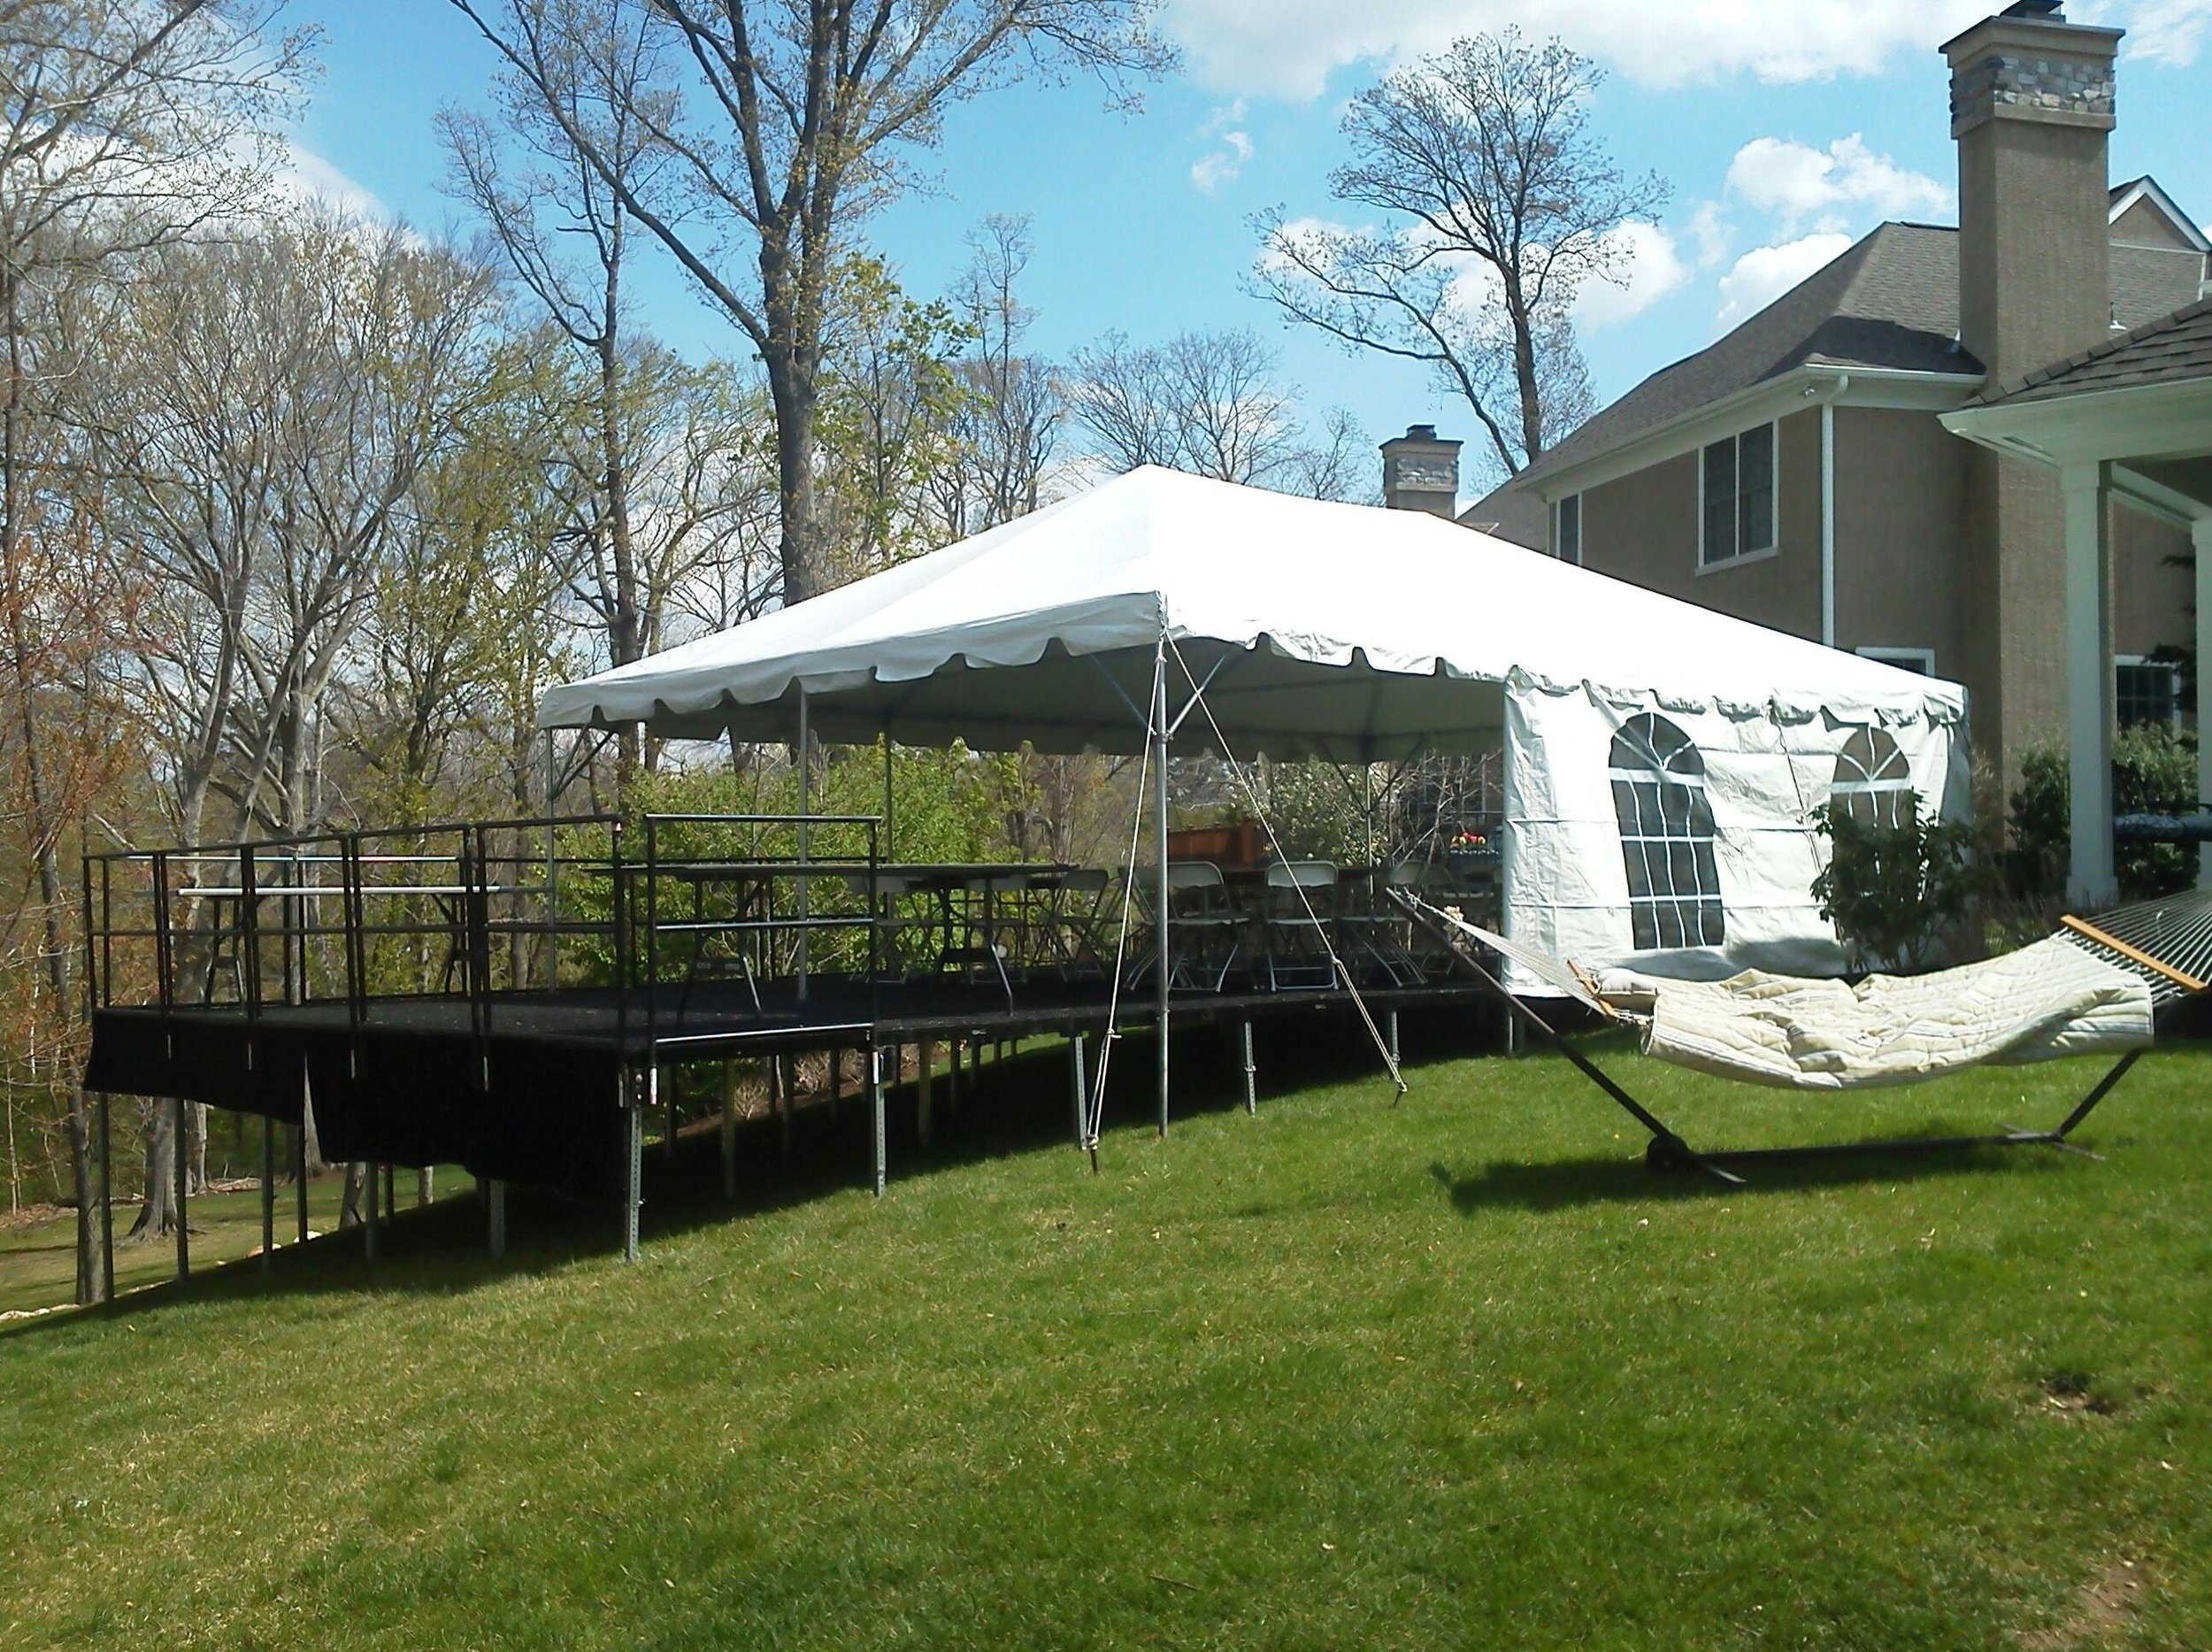 Phoenixville PA frame tent rentals